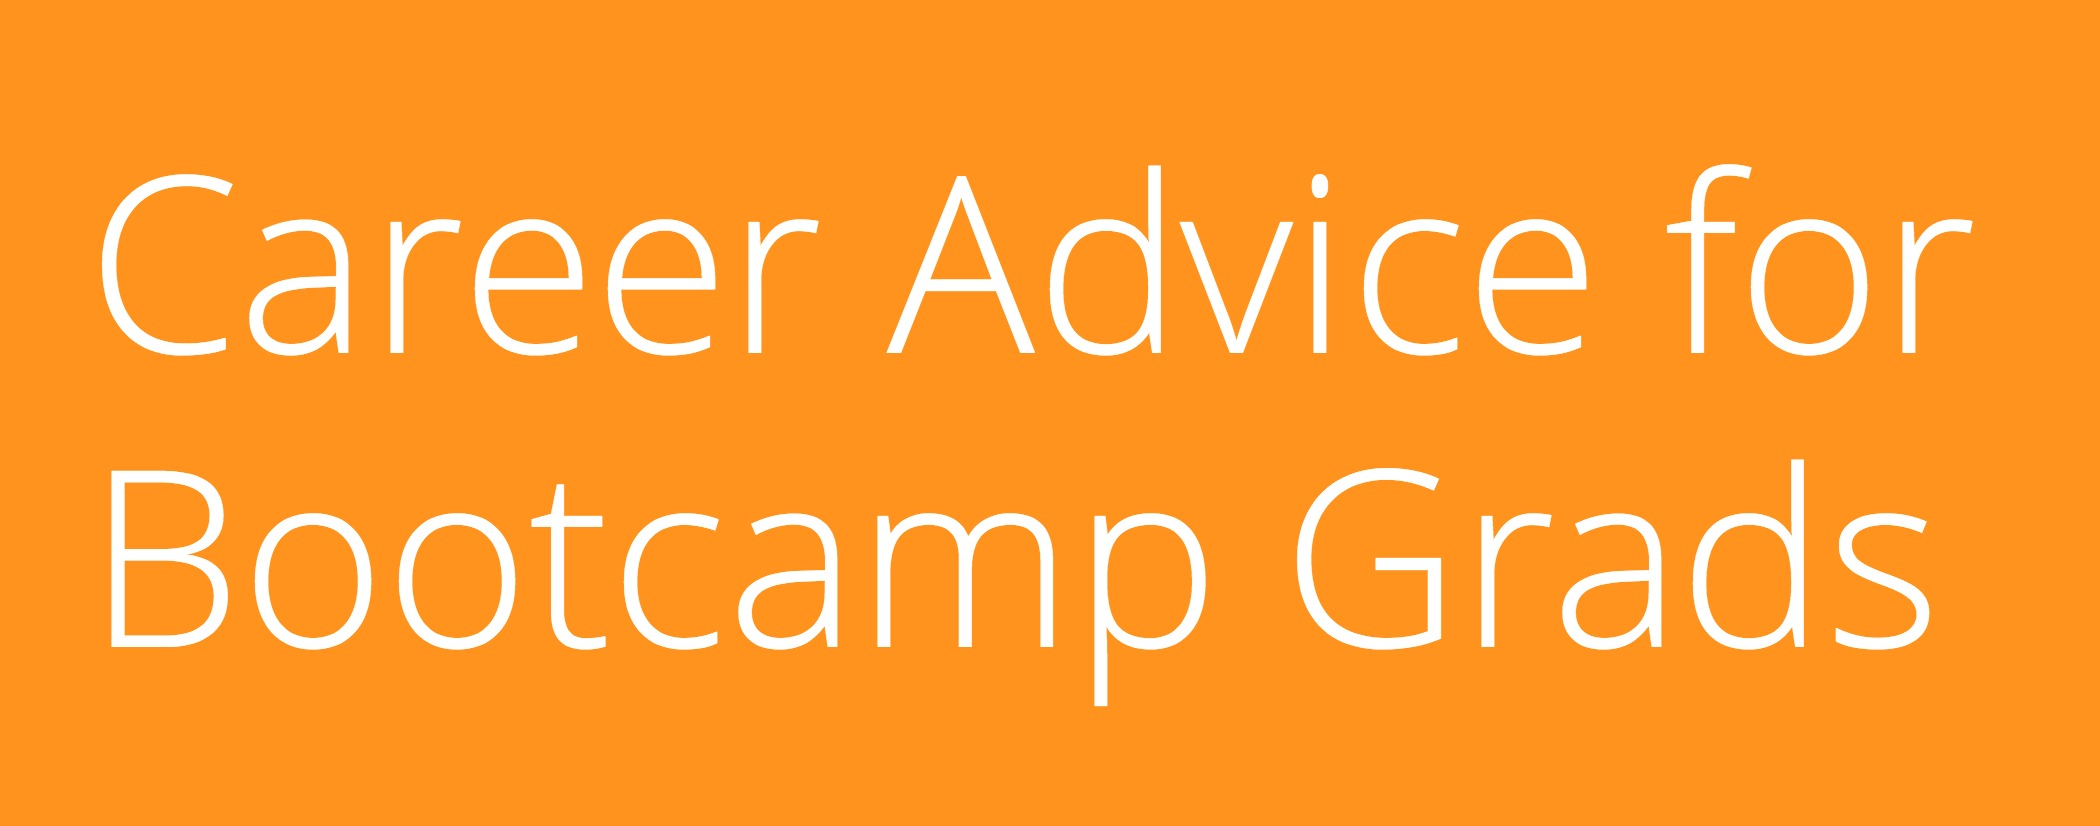 Career Advice for Bootcamp Grads